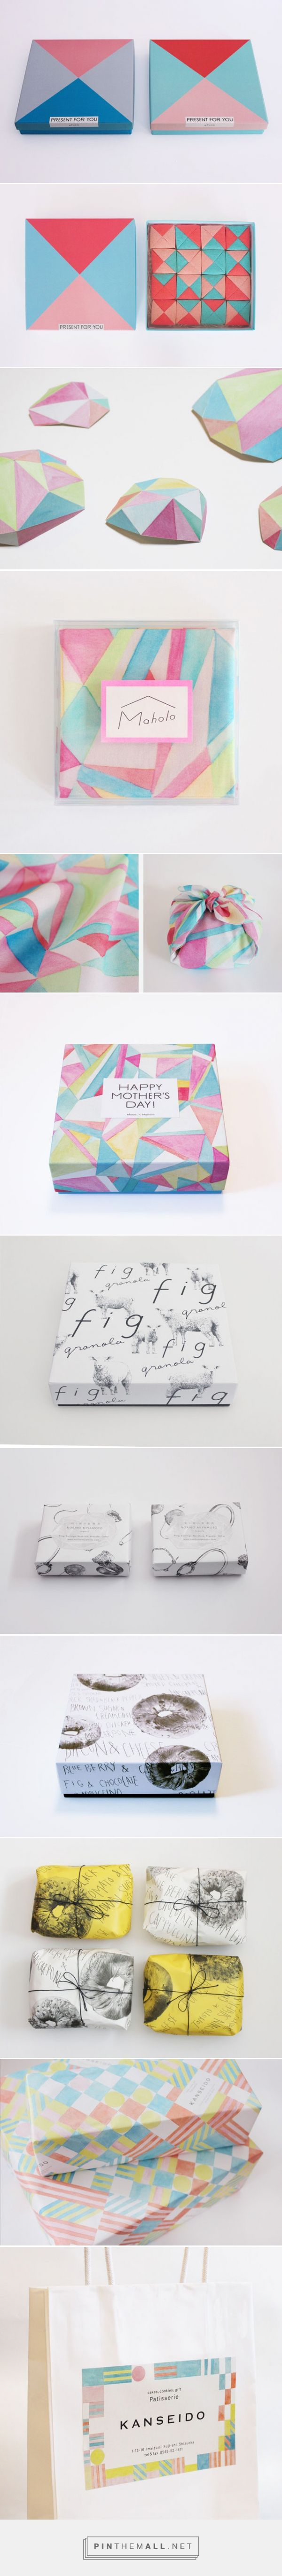 WORKS - yuka-shiramoto curated by Packaging Diva PD. A beautiful collection of…